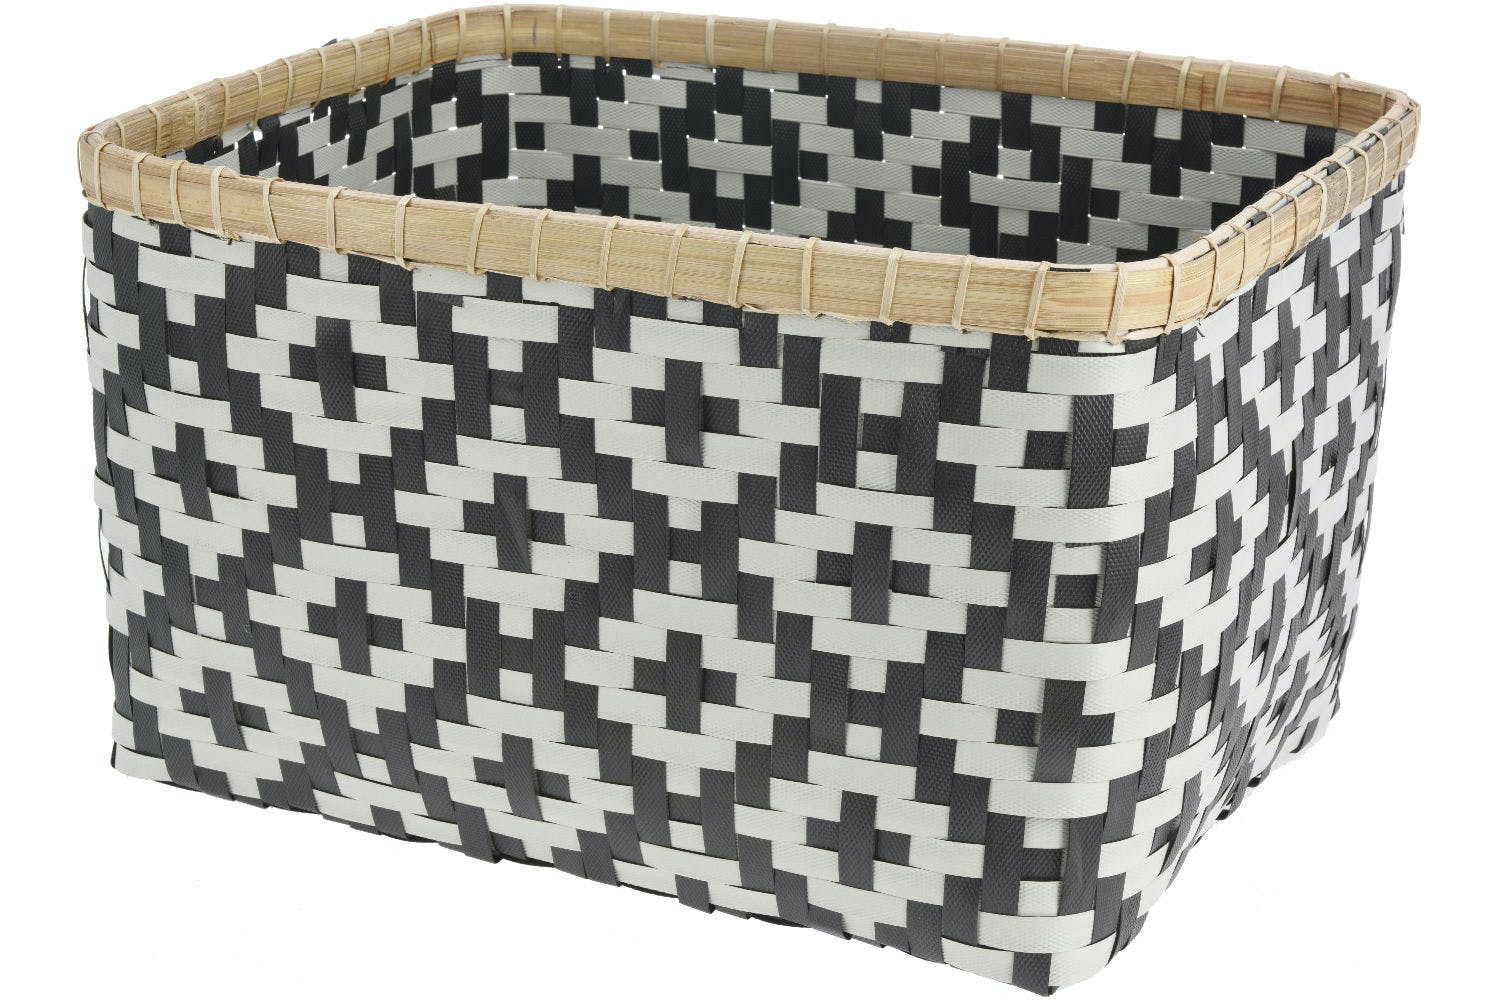 Straw Basket with Bamboo Edge